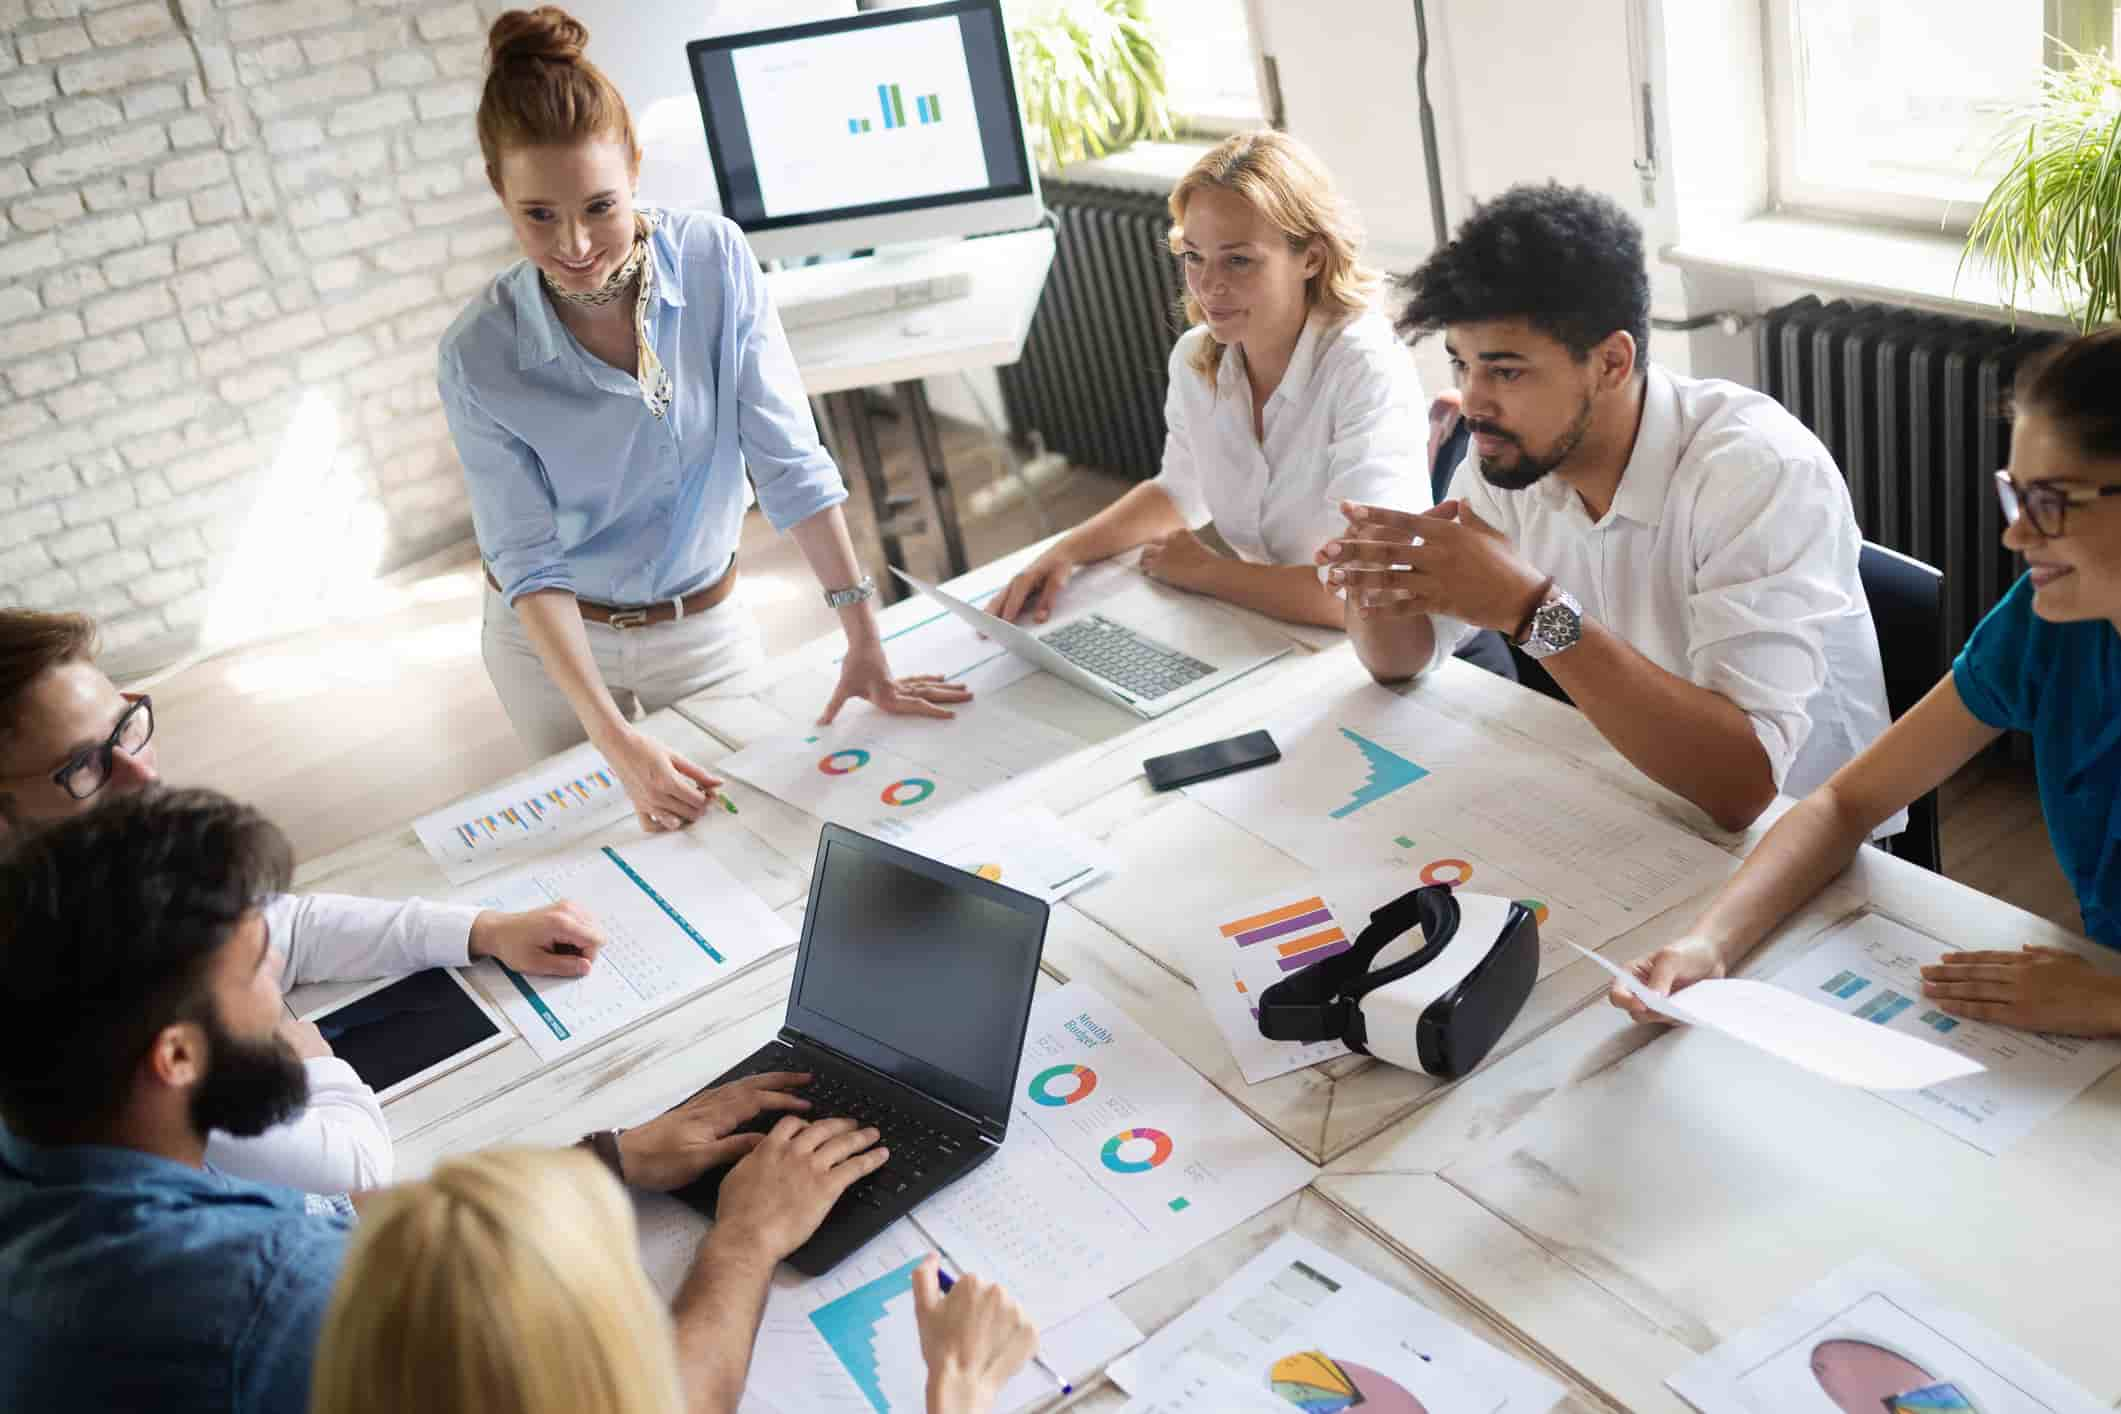 What Can HR and Employers Do to Improve Employee Satisfaction?